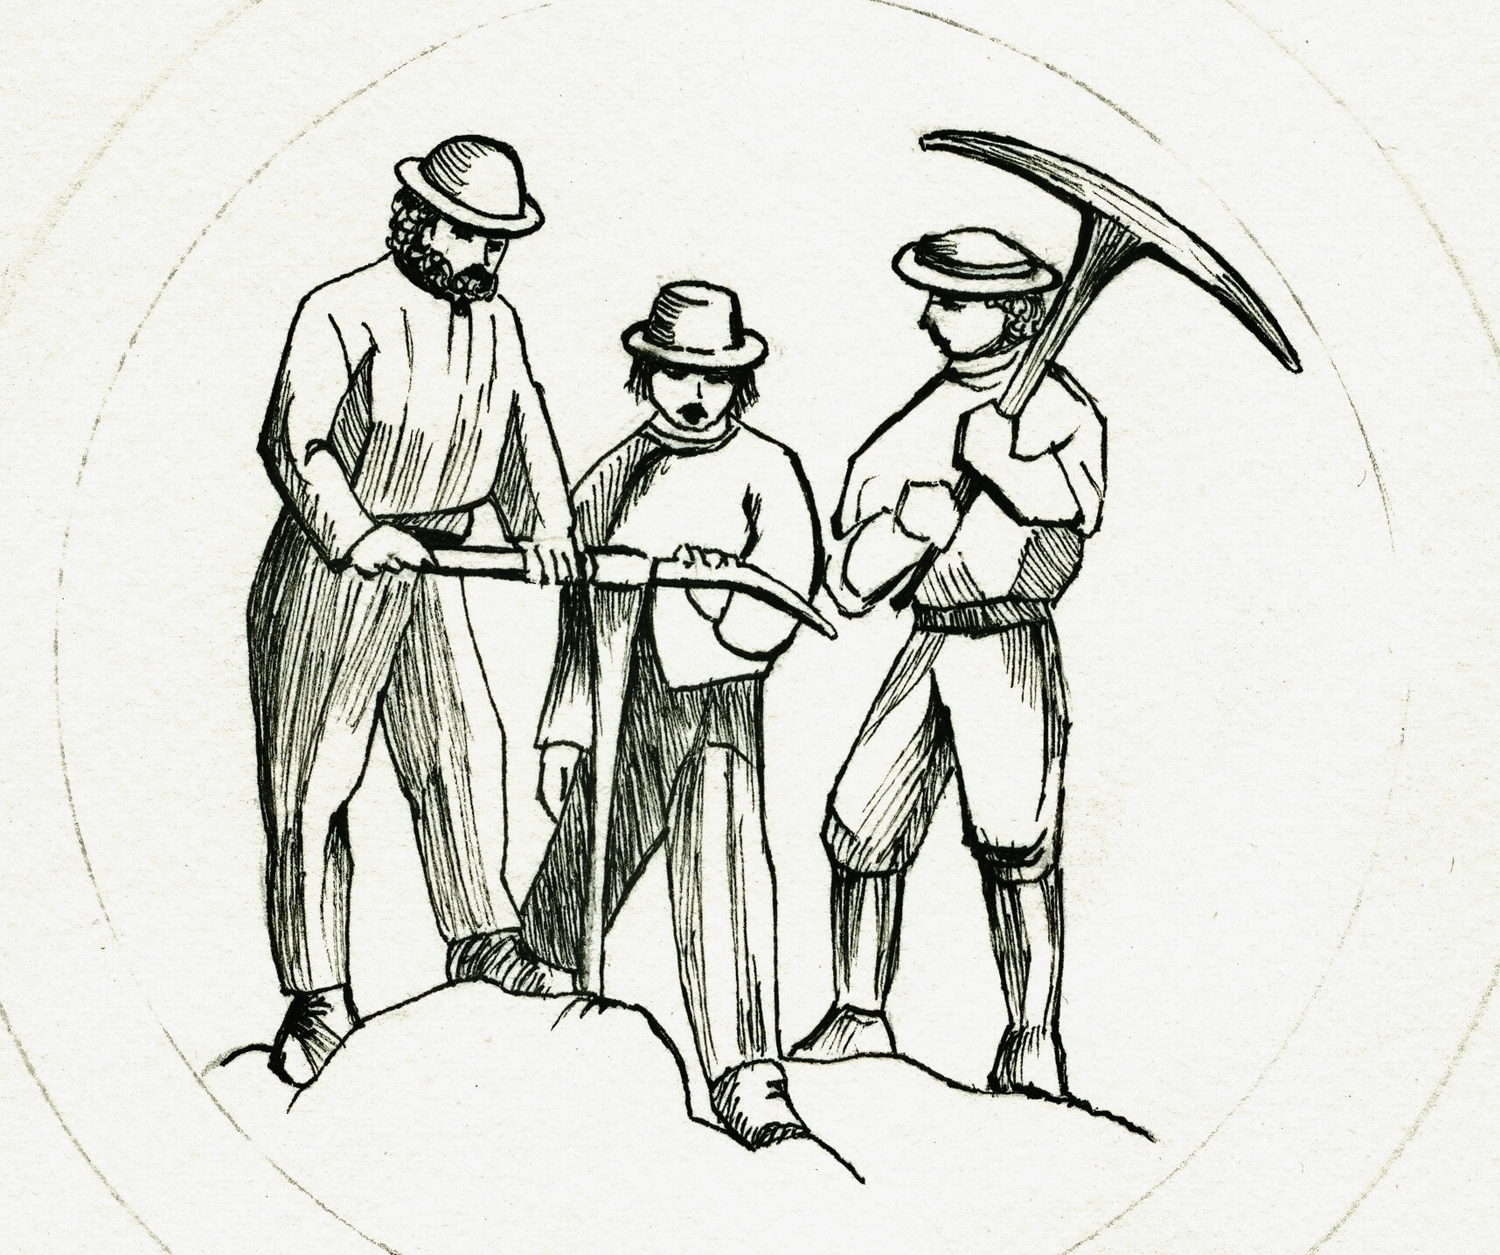 Marmora Historical Foundation Susanna Moodie Sketch 2.jpg